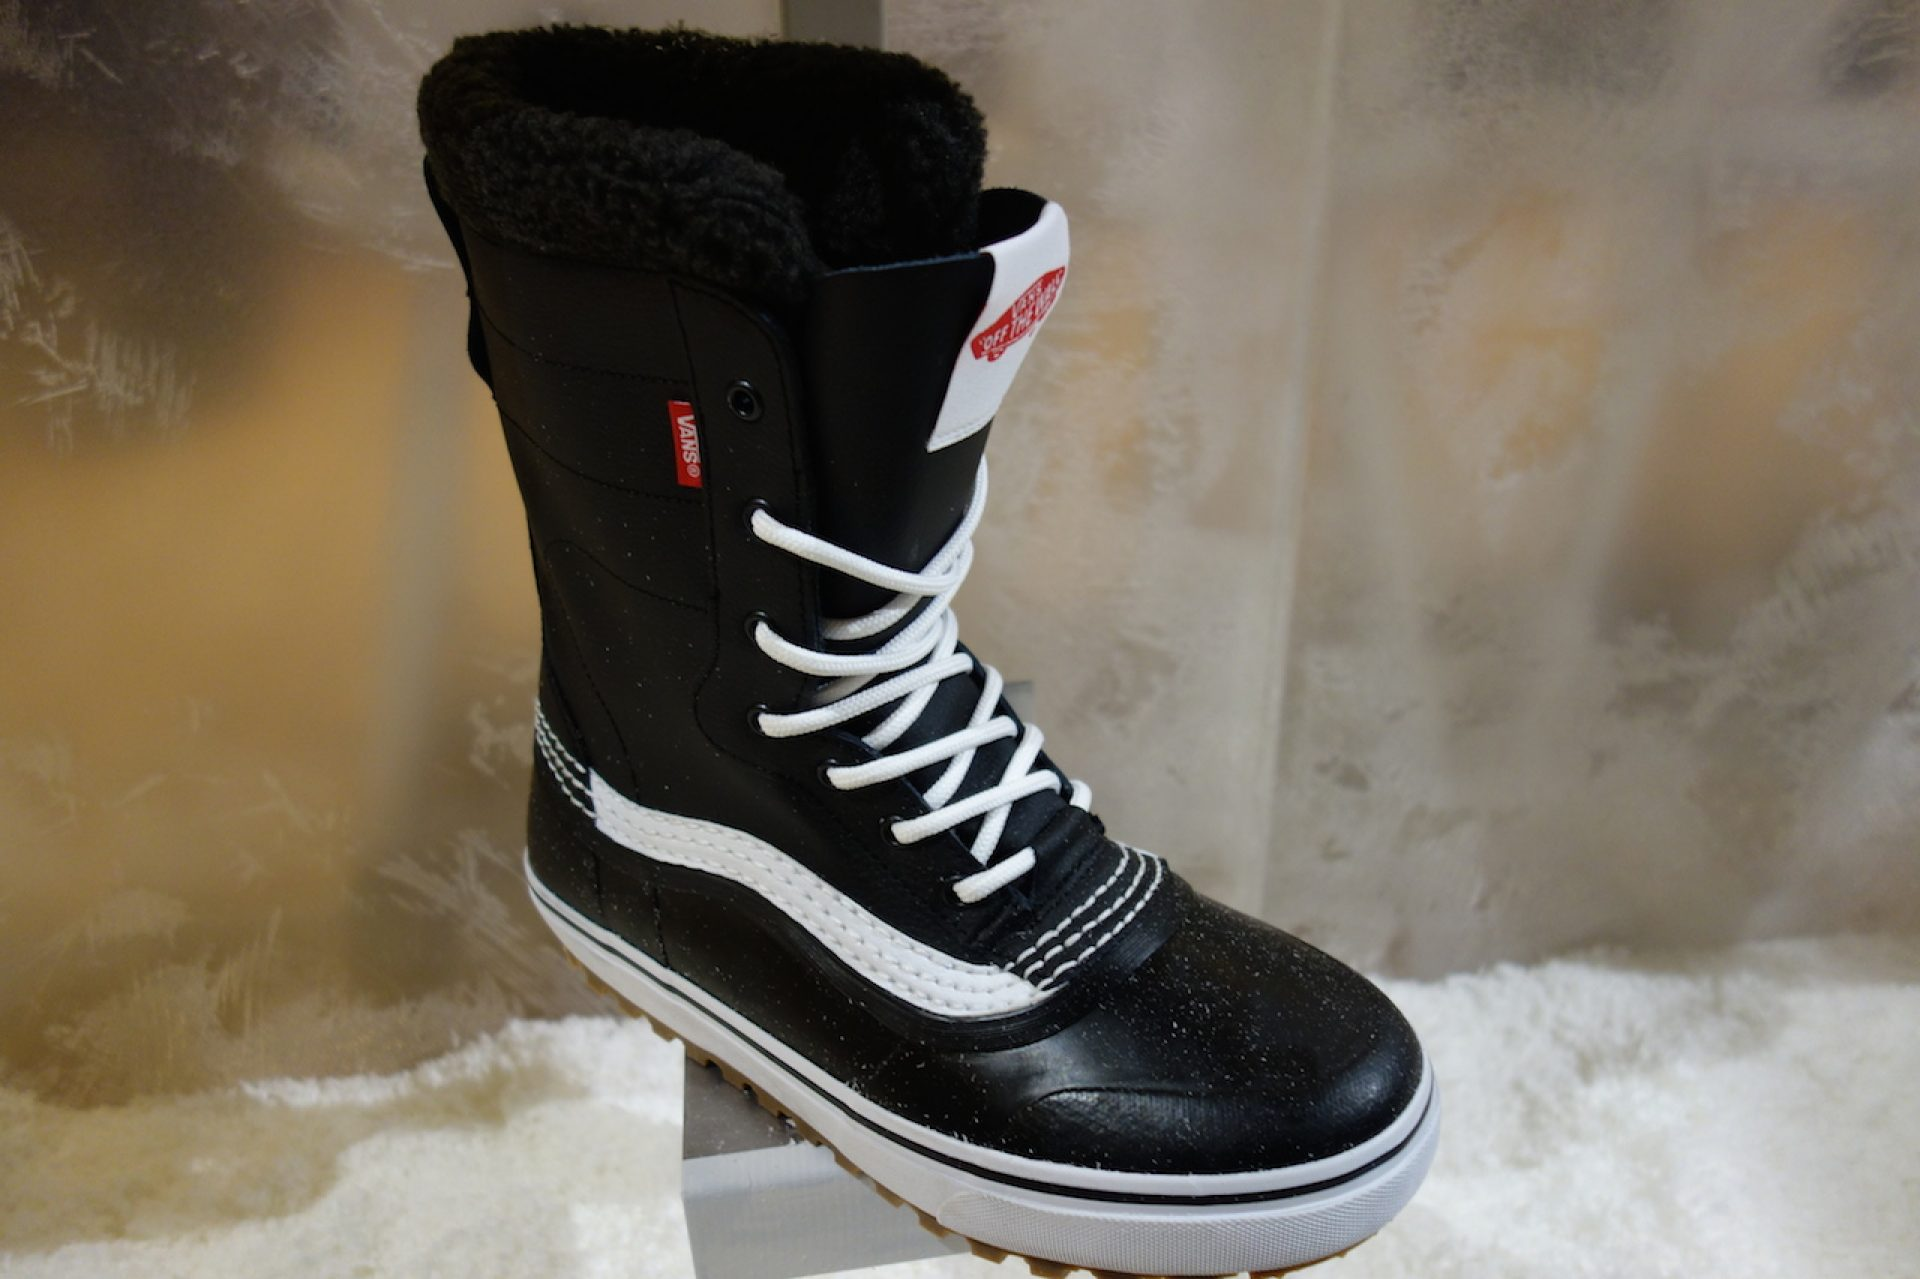 570f821142d Vans all-new Standard boot - released in USA this winter and has been a BIG  hit. Made for getting round town when it s cold and snowy